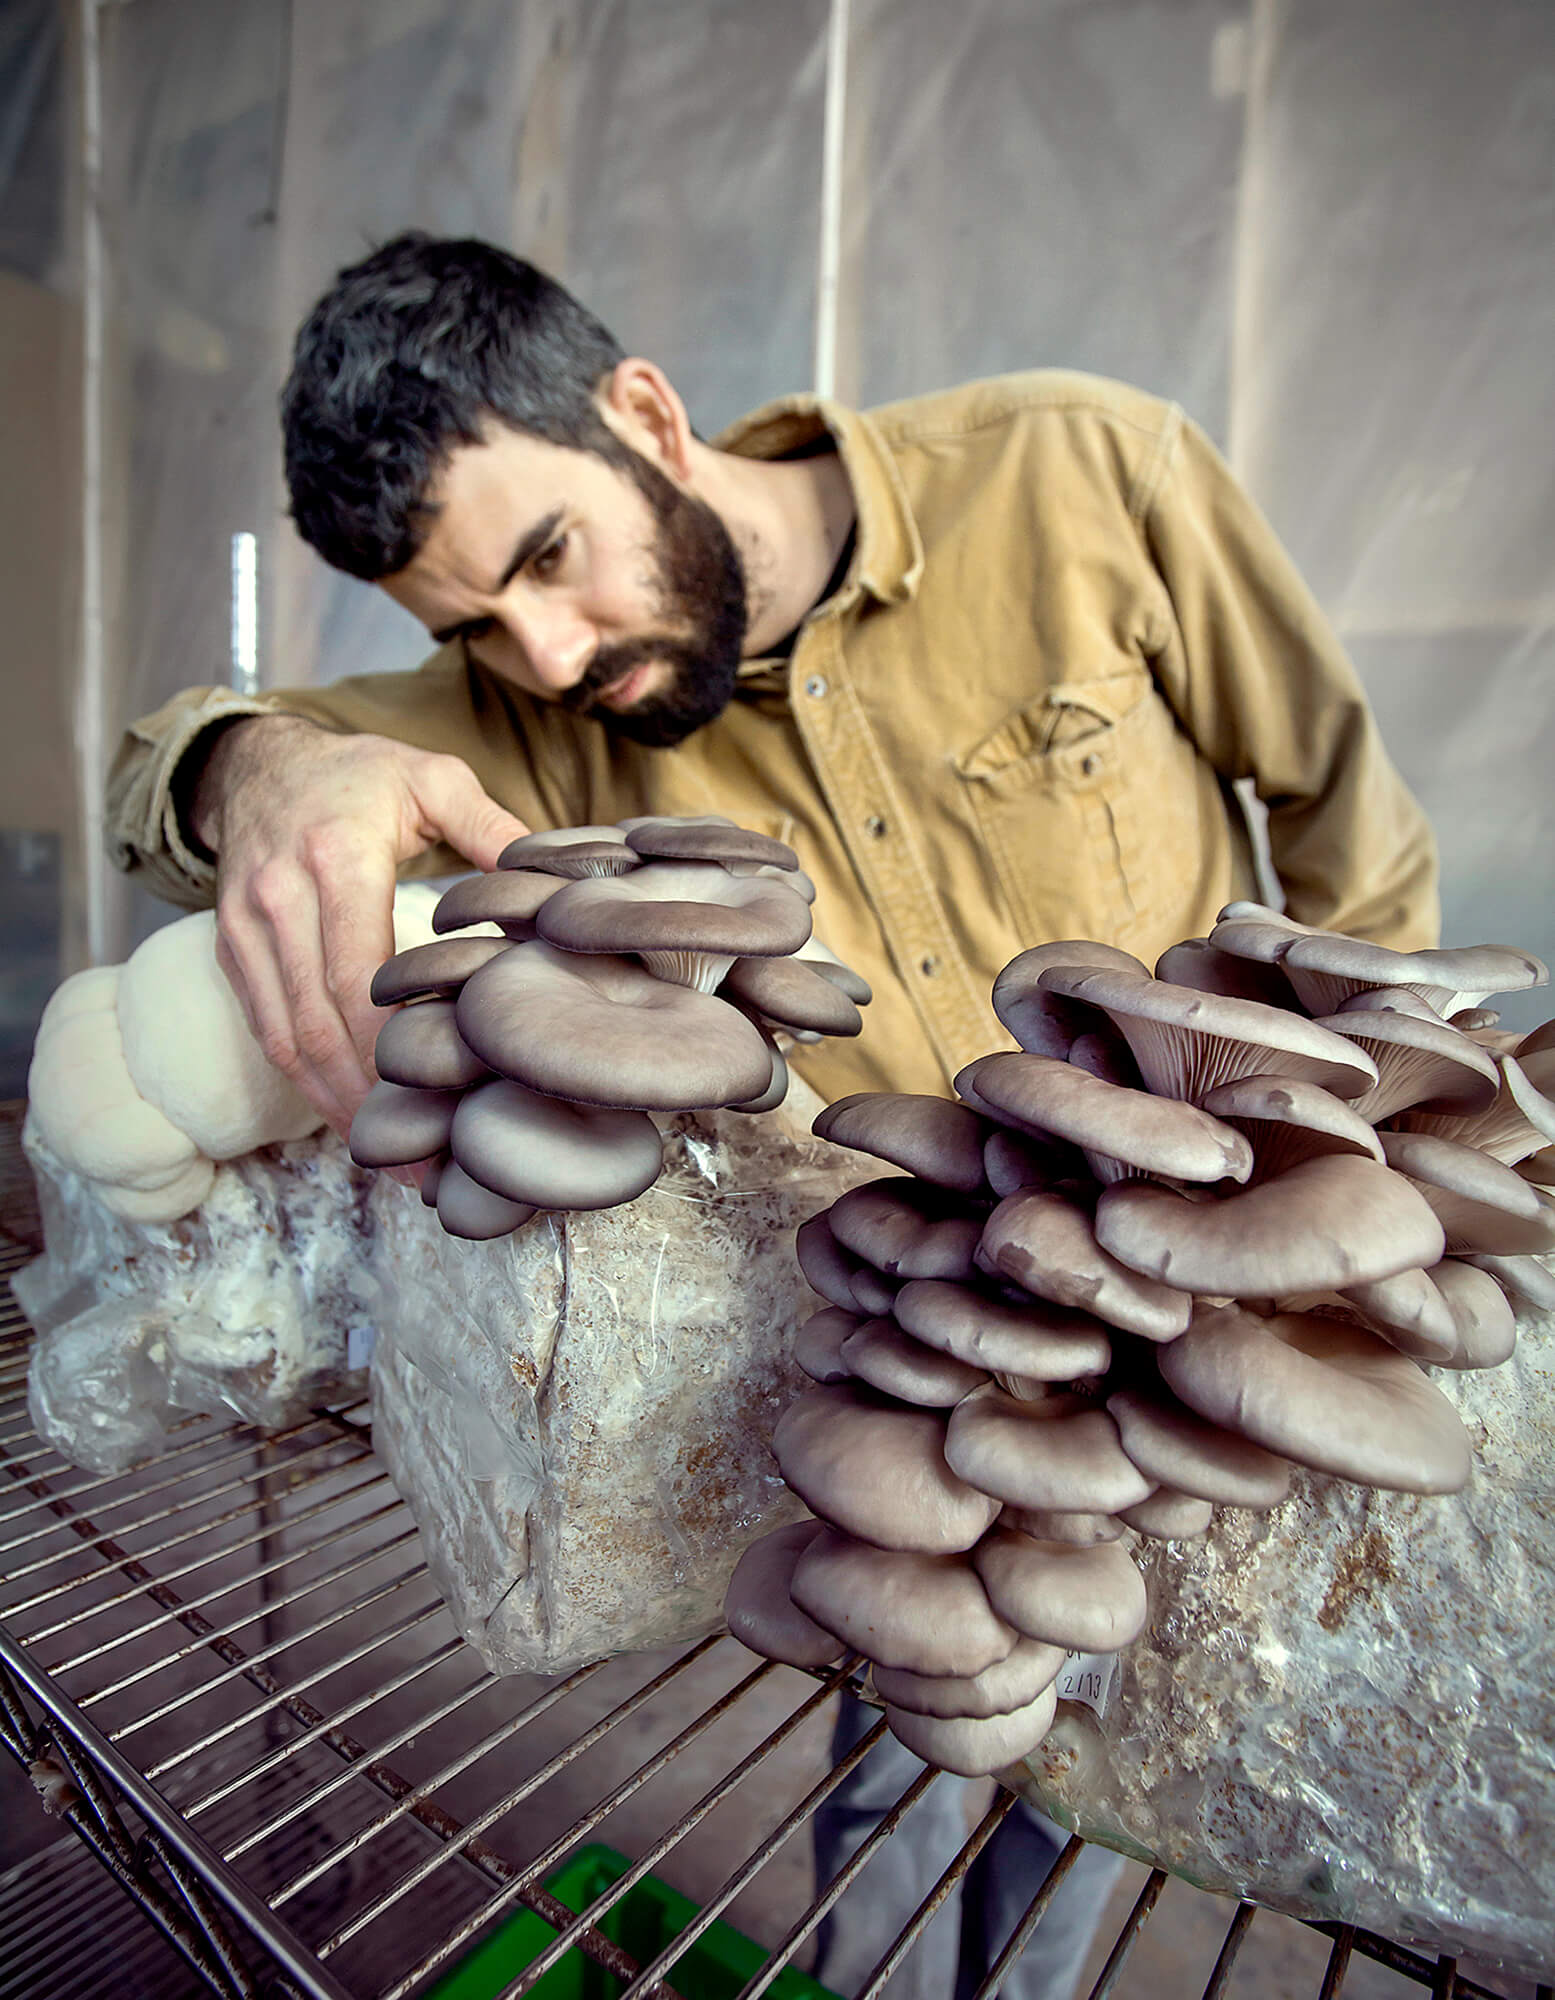 Portrait photography of Eliah Thanhauser, co-founder of North Spore Mushroom Company, in their facility with Blue Oyster and Lion's Mane mushrooms in Westbrook Maine